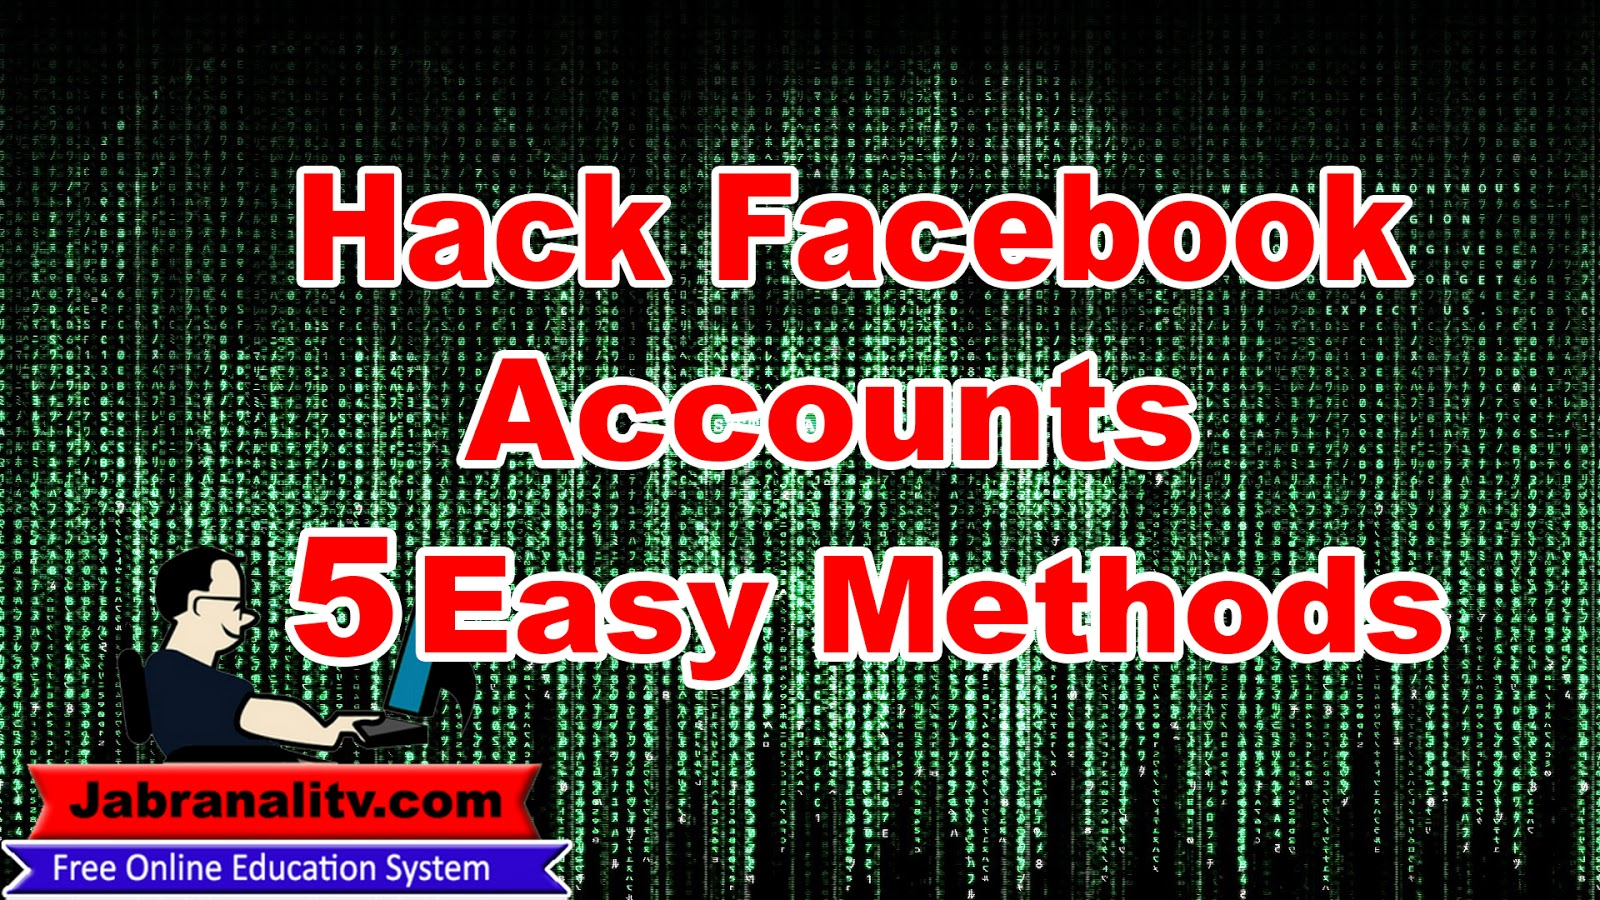 How to hack facebook account 5 easy methods free online before you read this article i am telling you its not so easy to hack someone facebook accountyou cannot hack someone facebook account without your ccuart Gallery